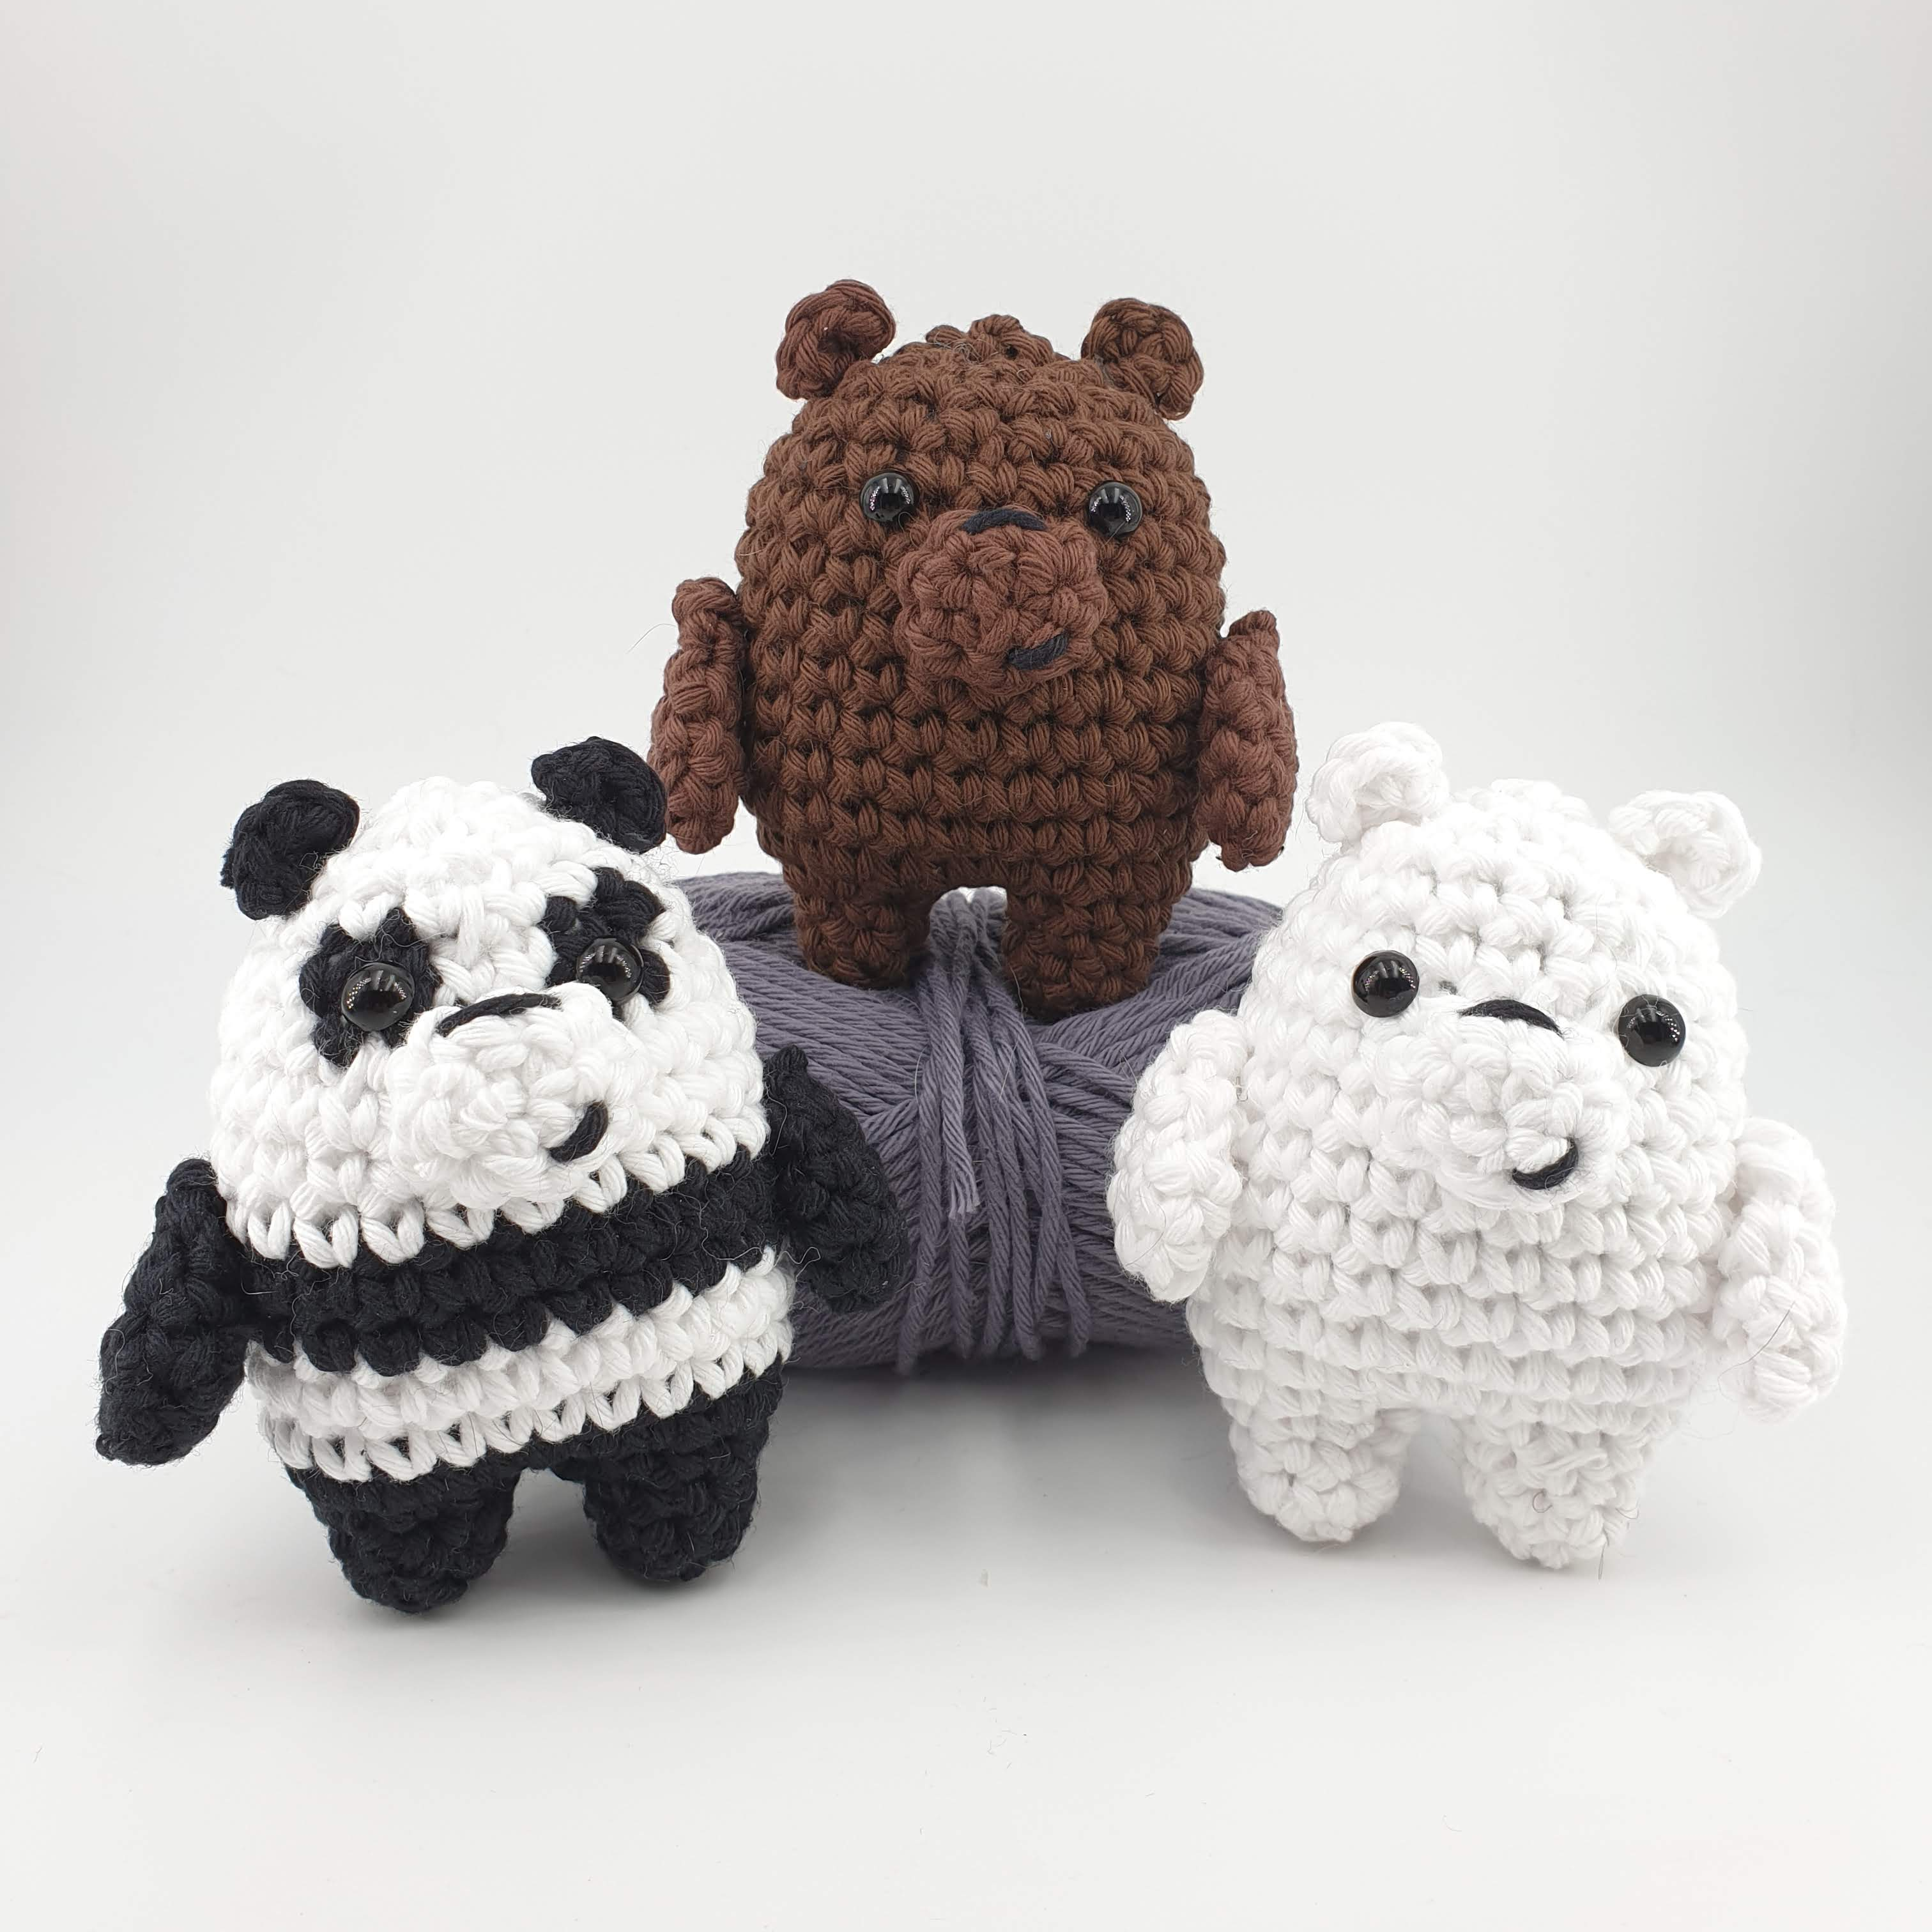 CROCHET PATTERN: We Bare Bears Inspired Baby Bear | Kawaii crochet ... | 3024x3024